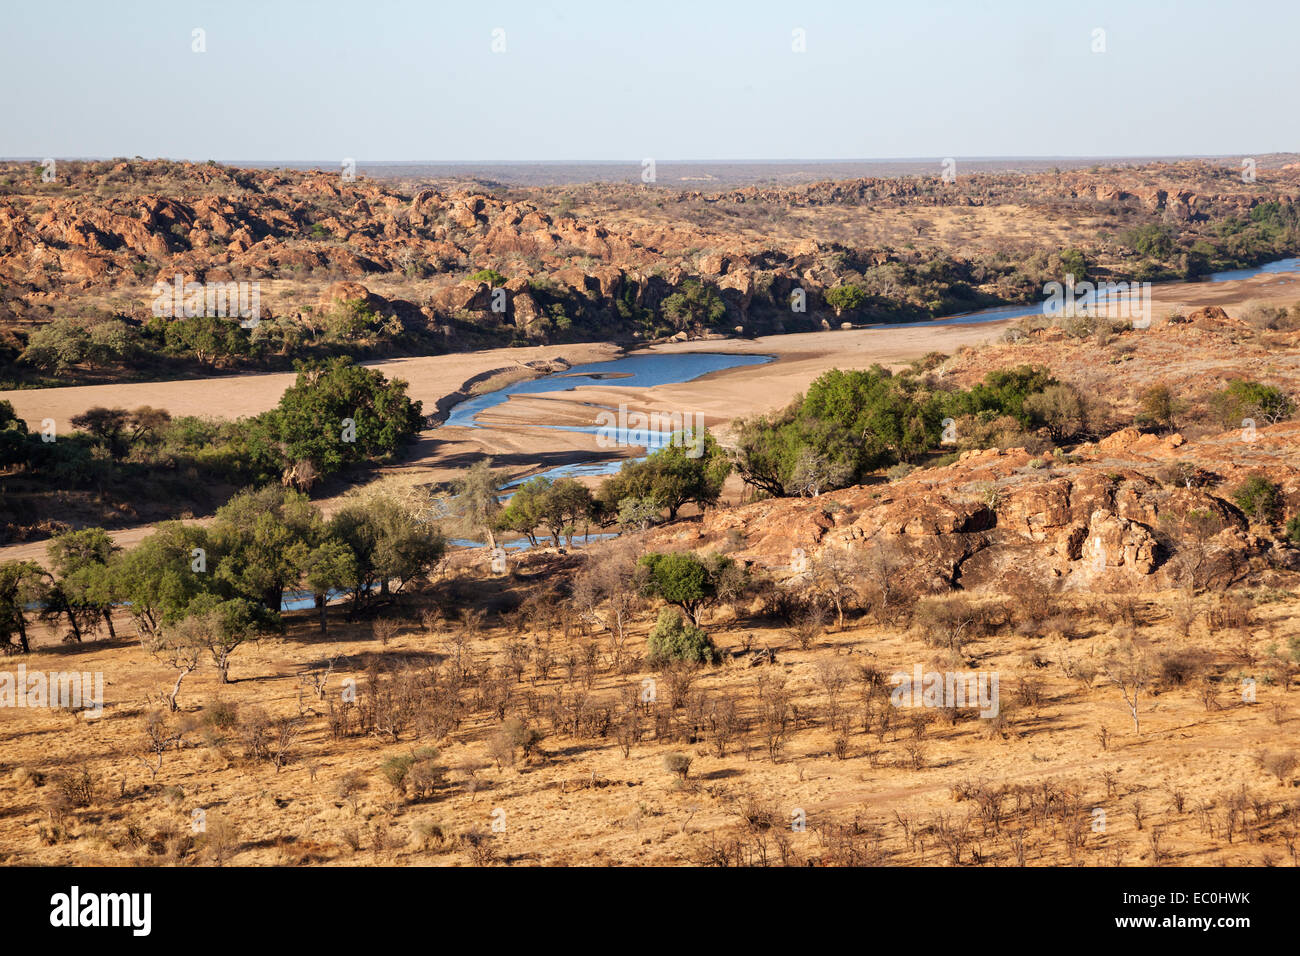 Limpopo province stock photos limpopo province stock images alamy mapungubwe national park view of limpopo and shashi river confluence limpopo province south sciox Image collections